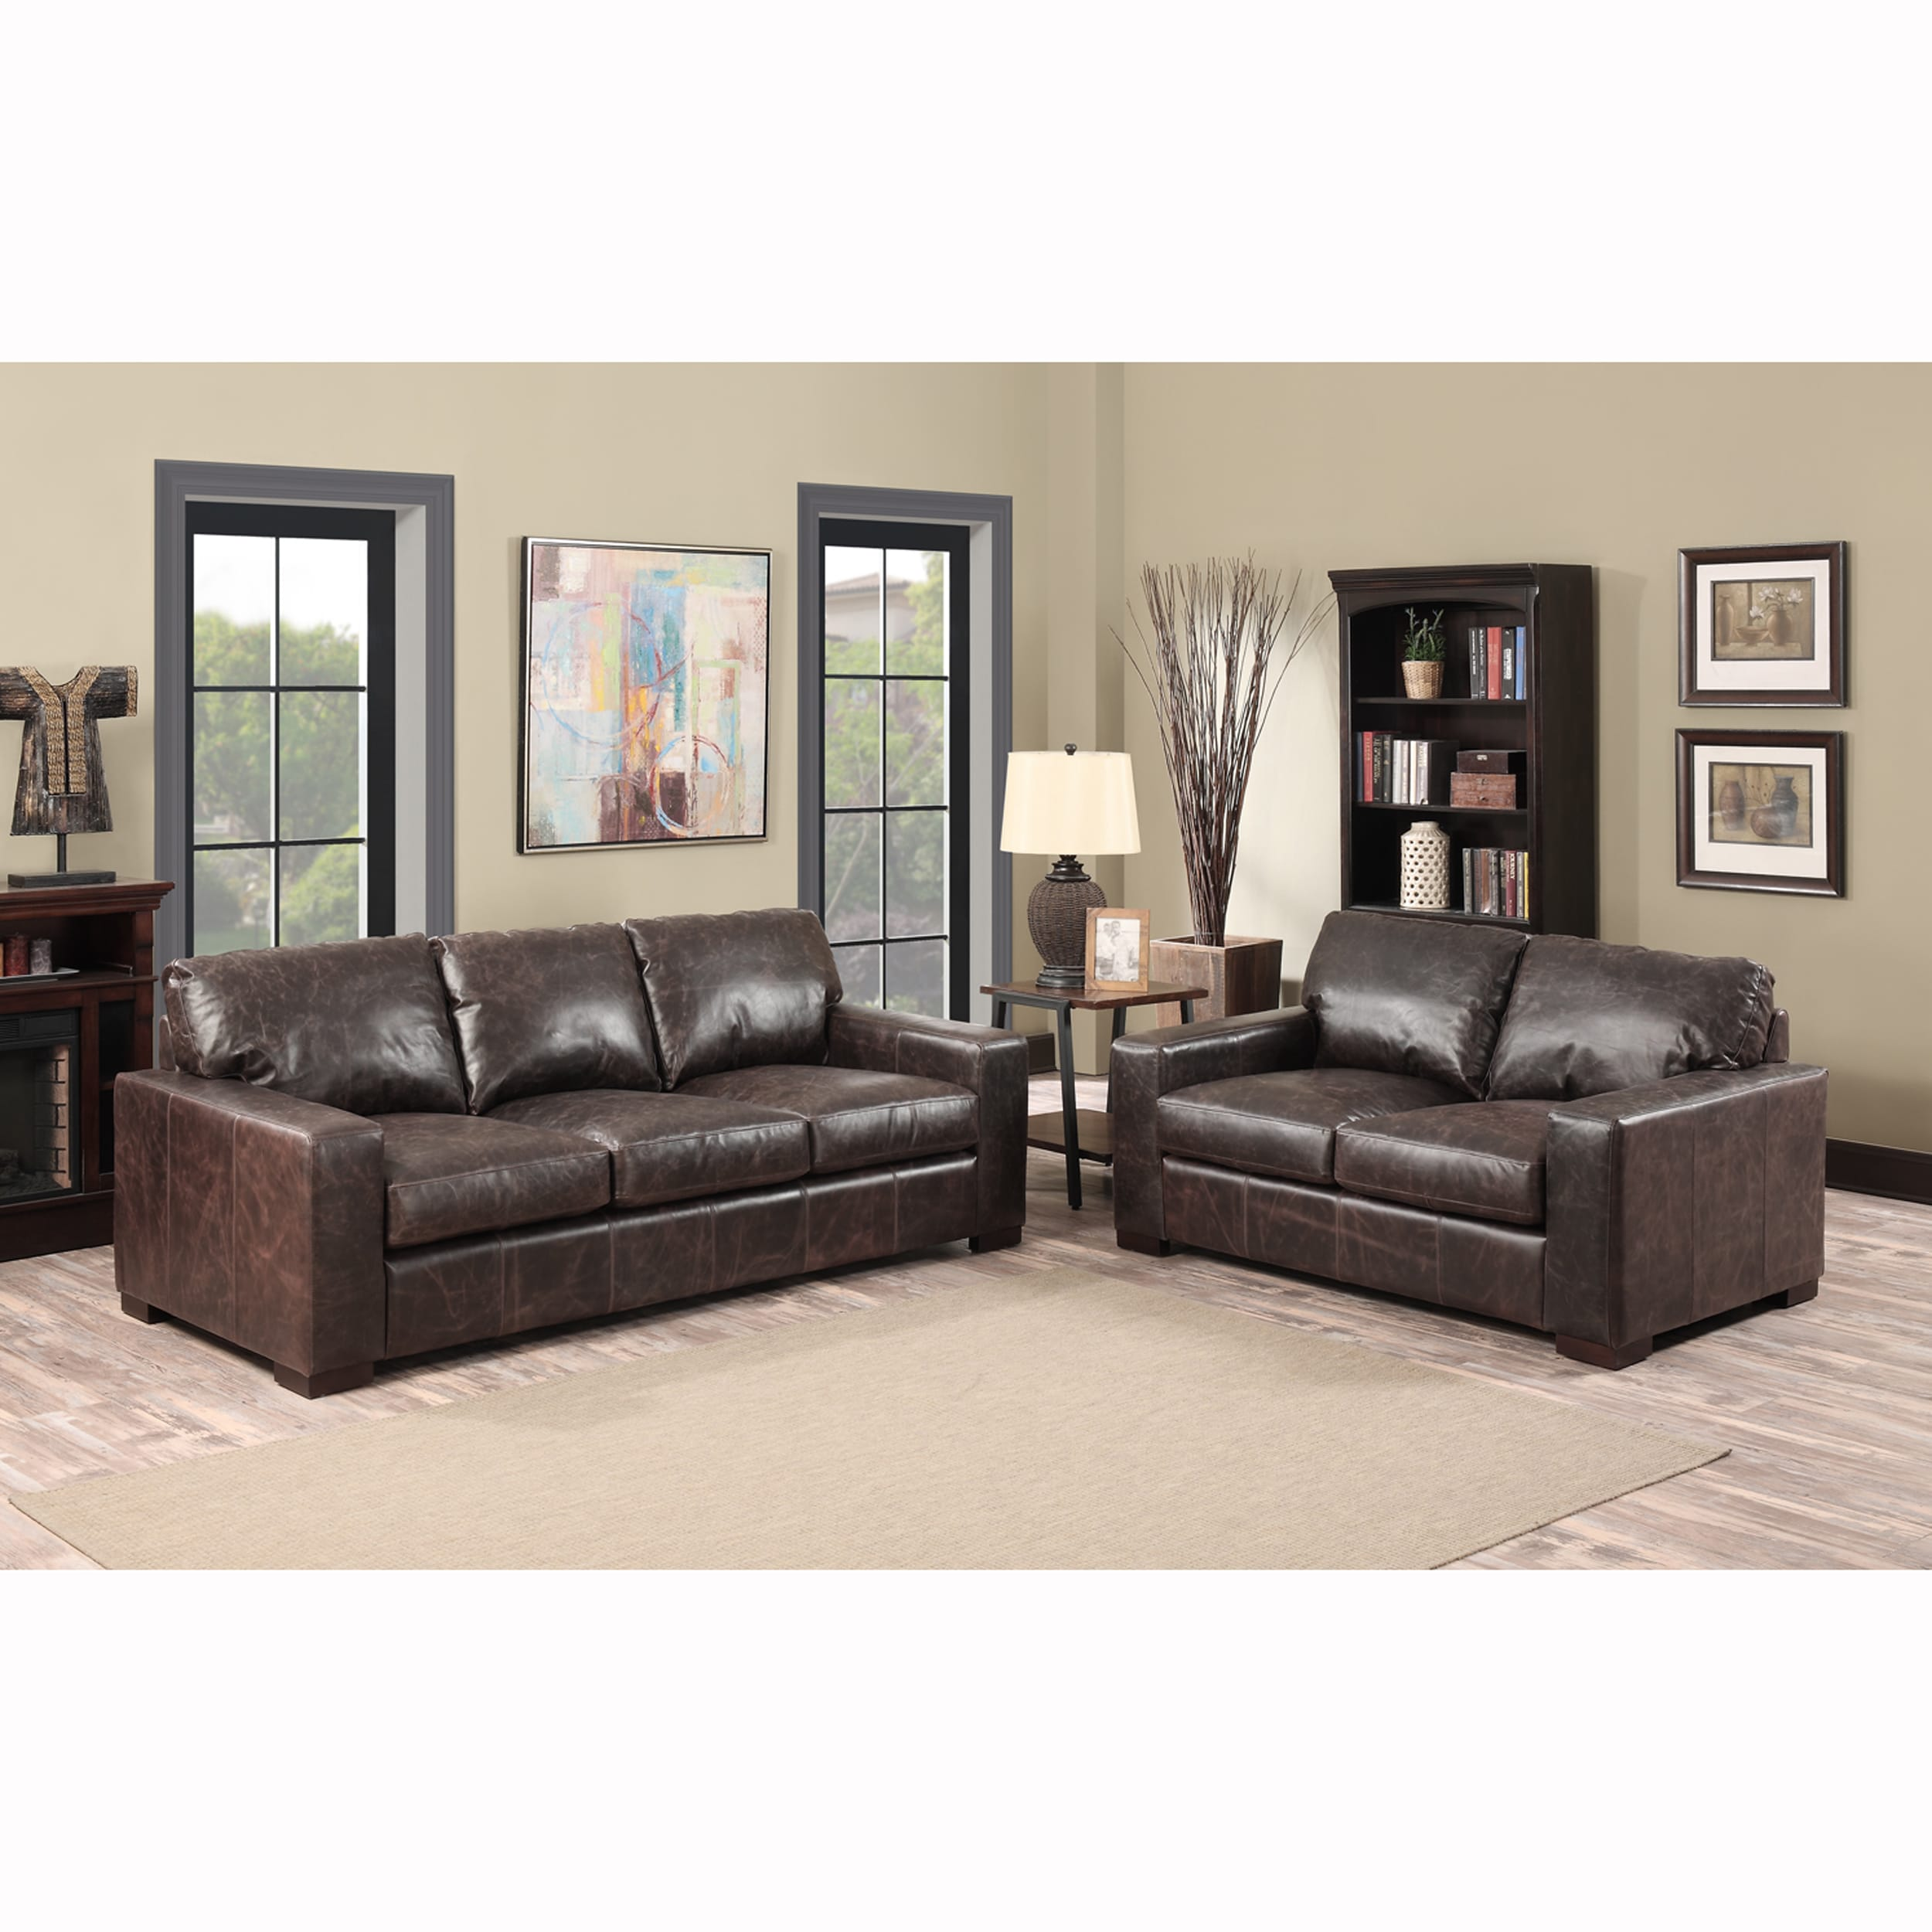 loveseat sofa brown design full of and sectional large couch prices sofas size sleeper